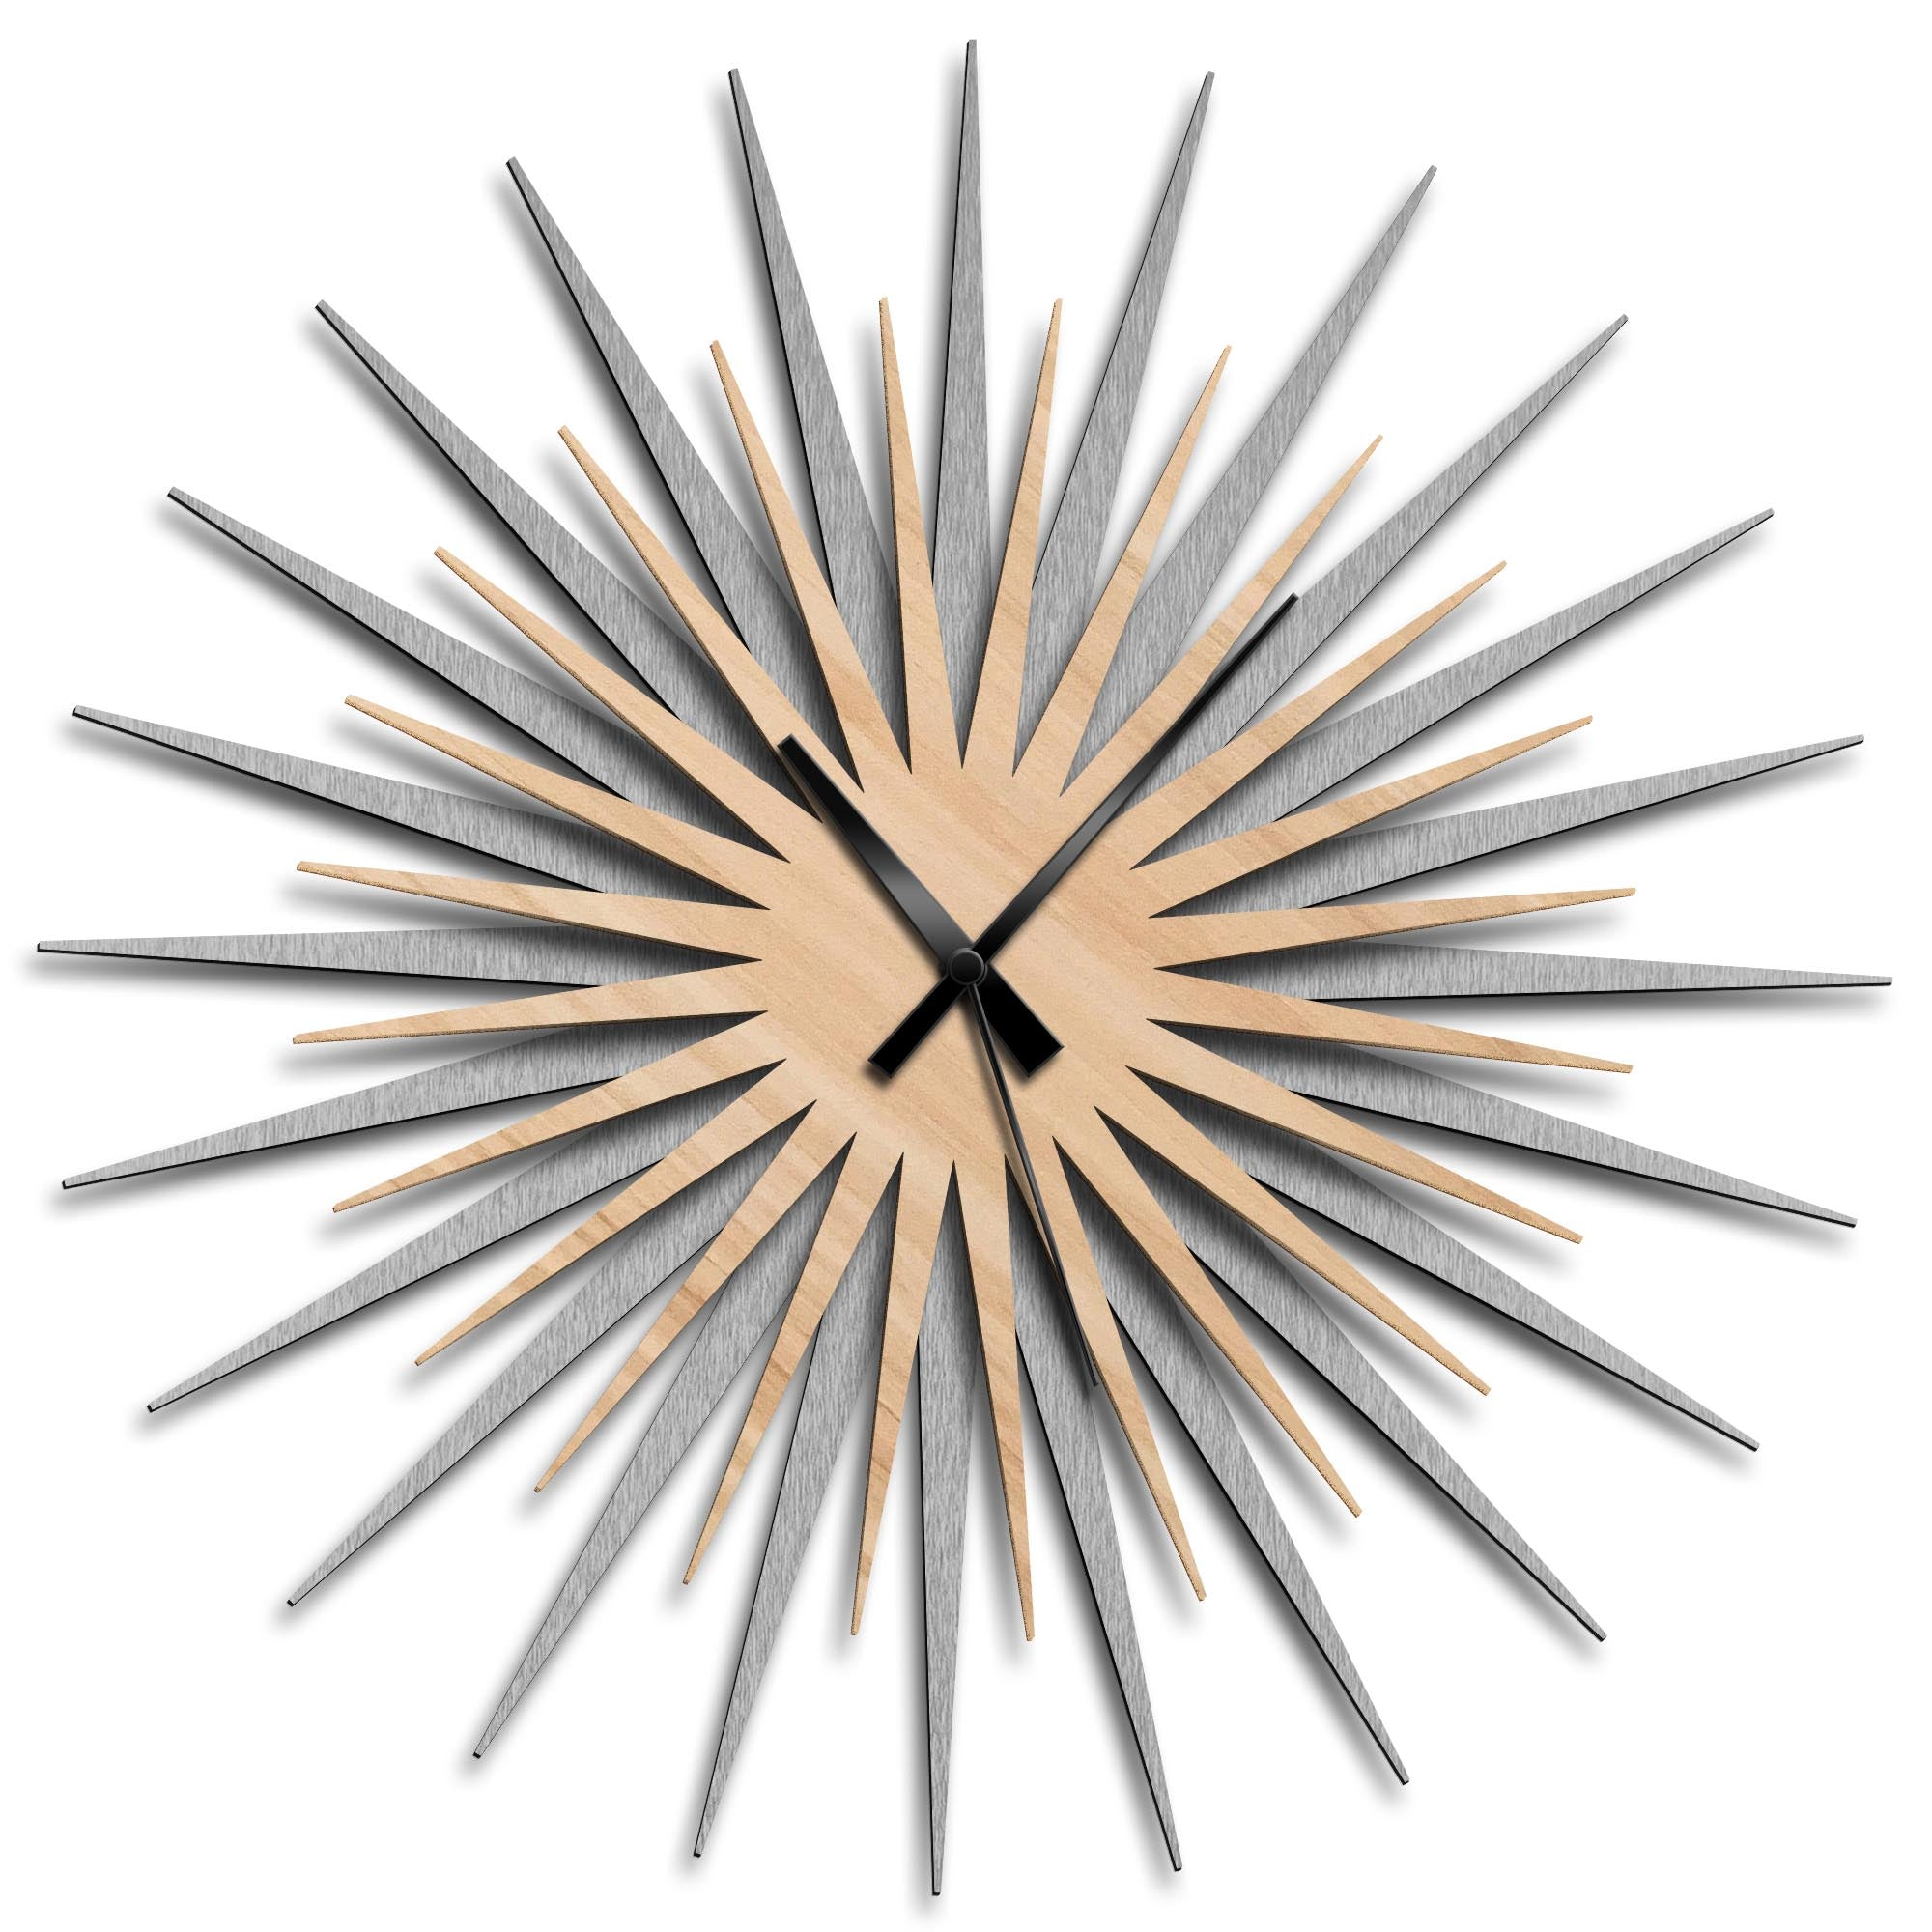 Atomic Era Clock Silver Maple Black by Adam Schwoeppe - Mid-Century Modern Clock on Brushed Silver Polymetal